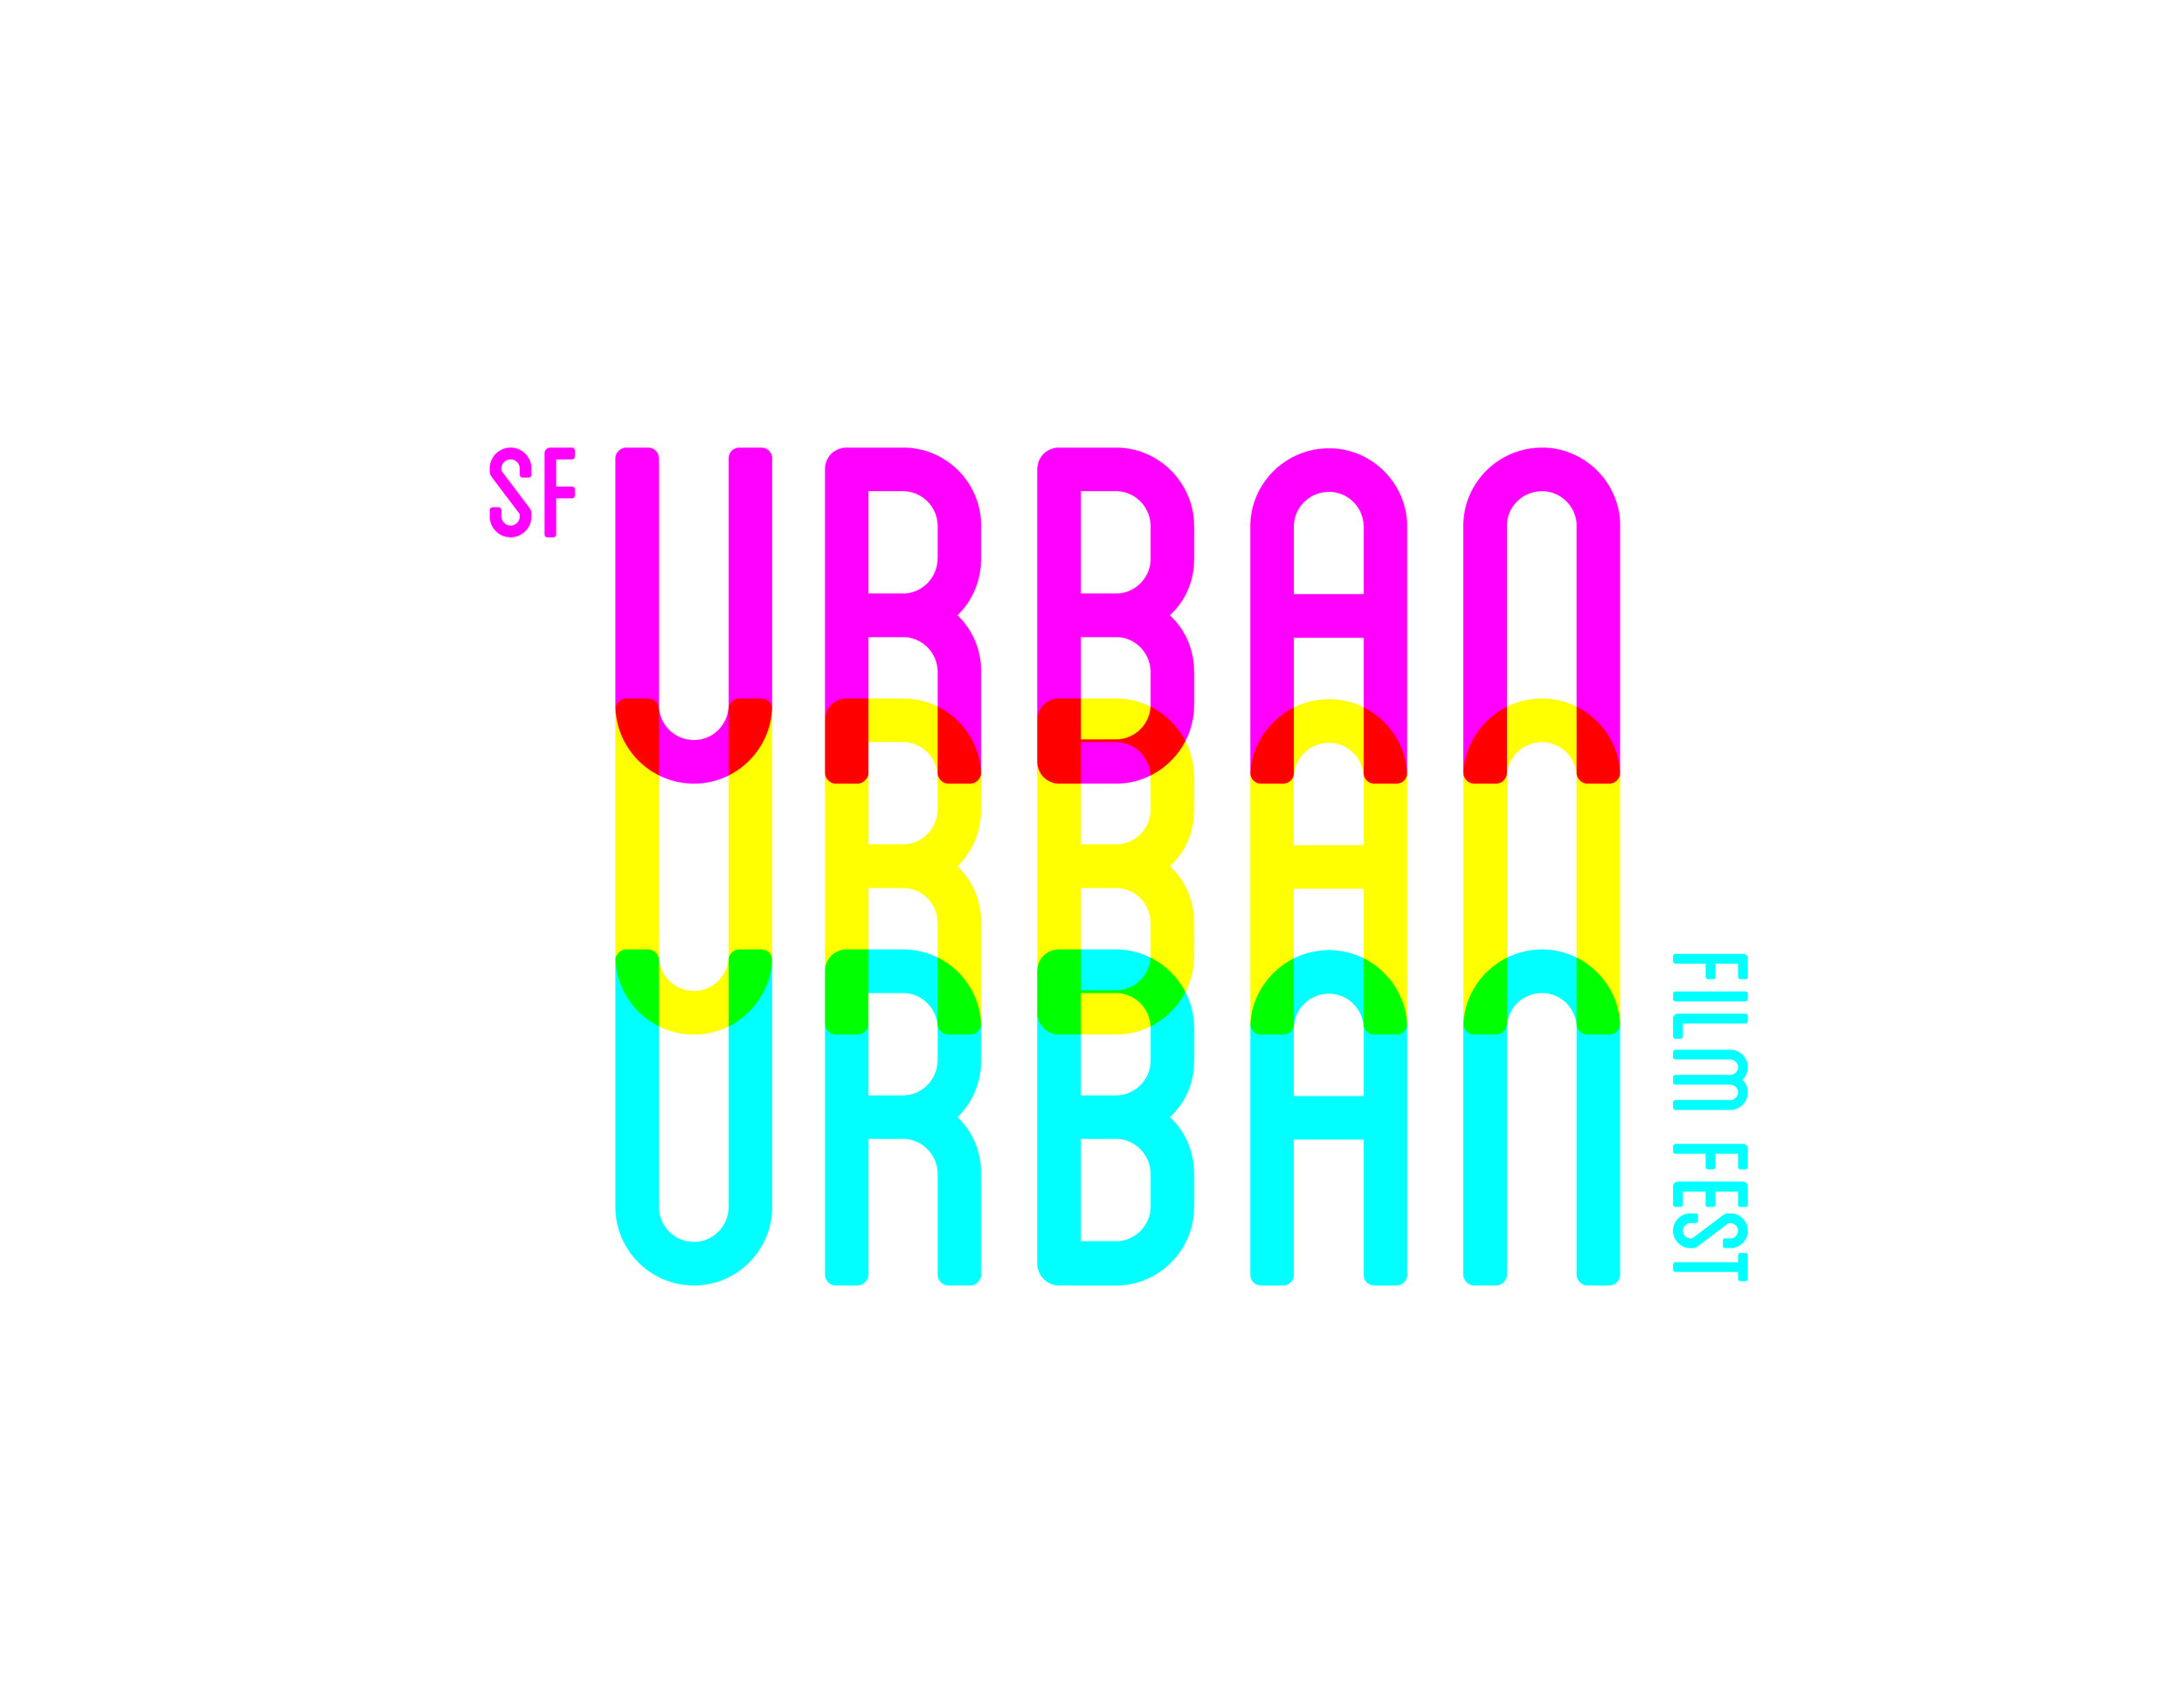 SF Urban Film Fest gathers a diverse, engaged audience and uses the power of storytelling to spark discussion and civic engagement around urban issues.